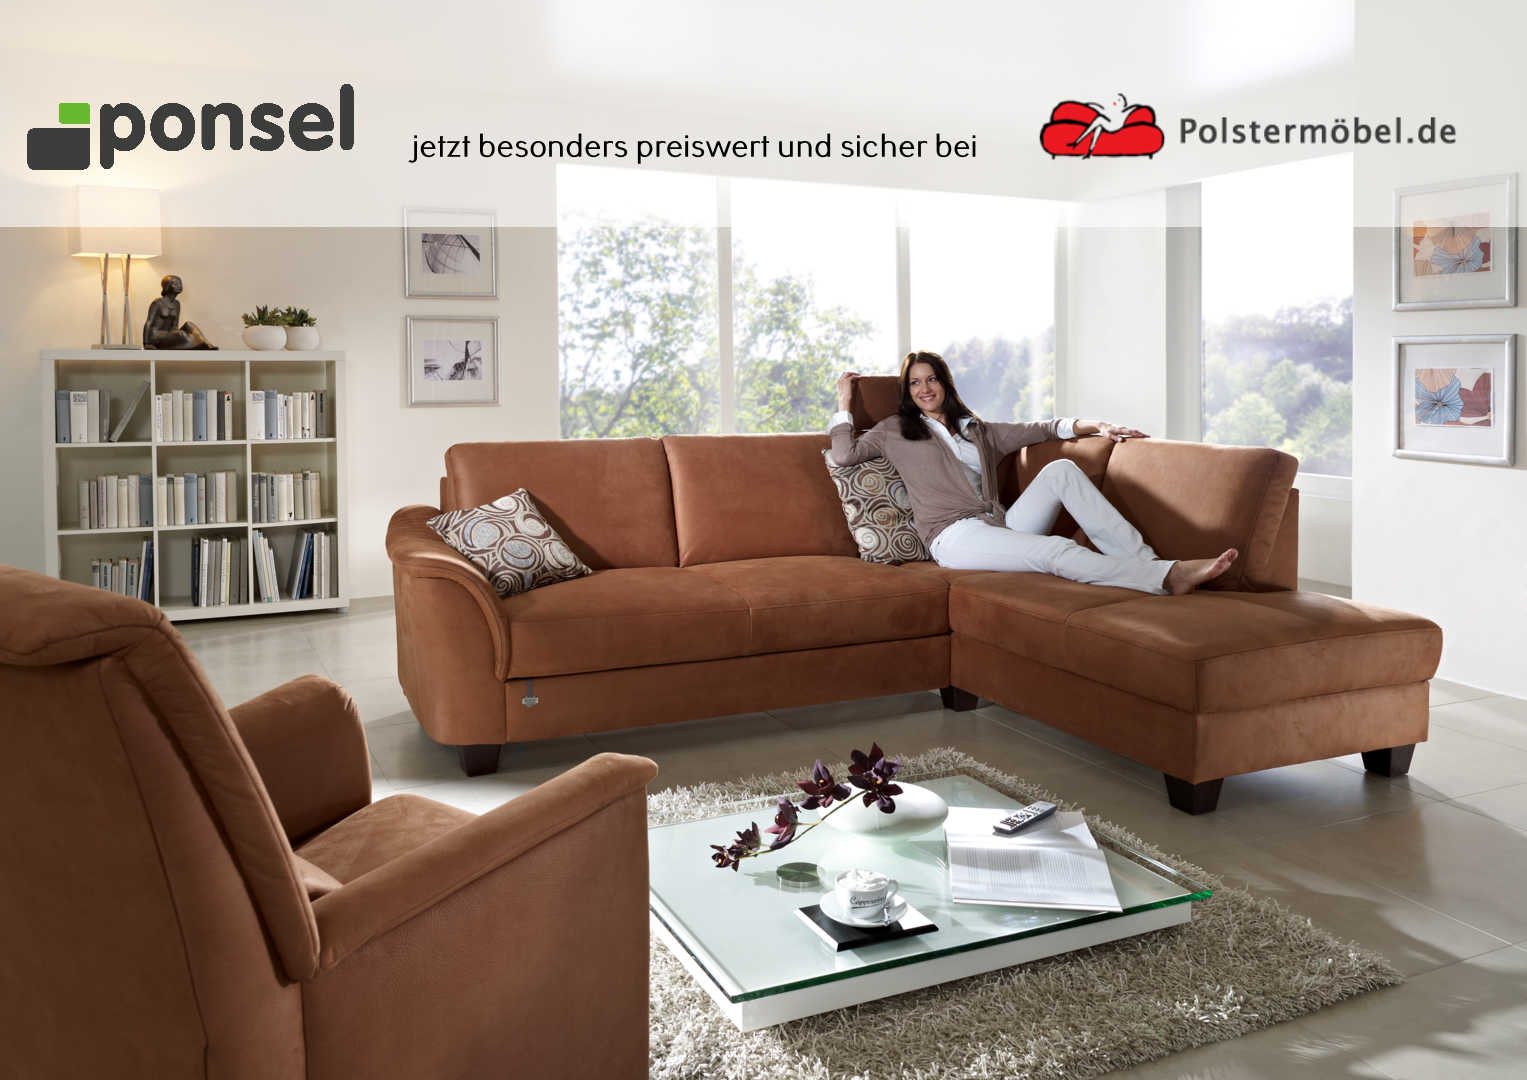 ponsel stoff chalet s 129 bozen stoff polsterm. Black Bedroom Furniture Sets. Home Design Ideas